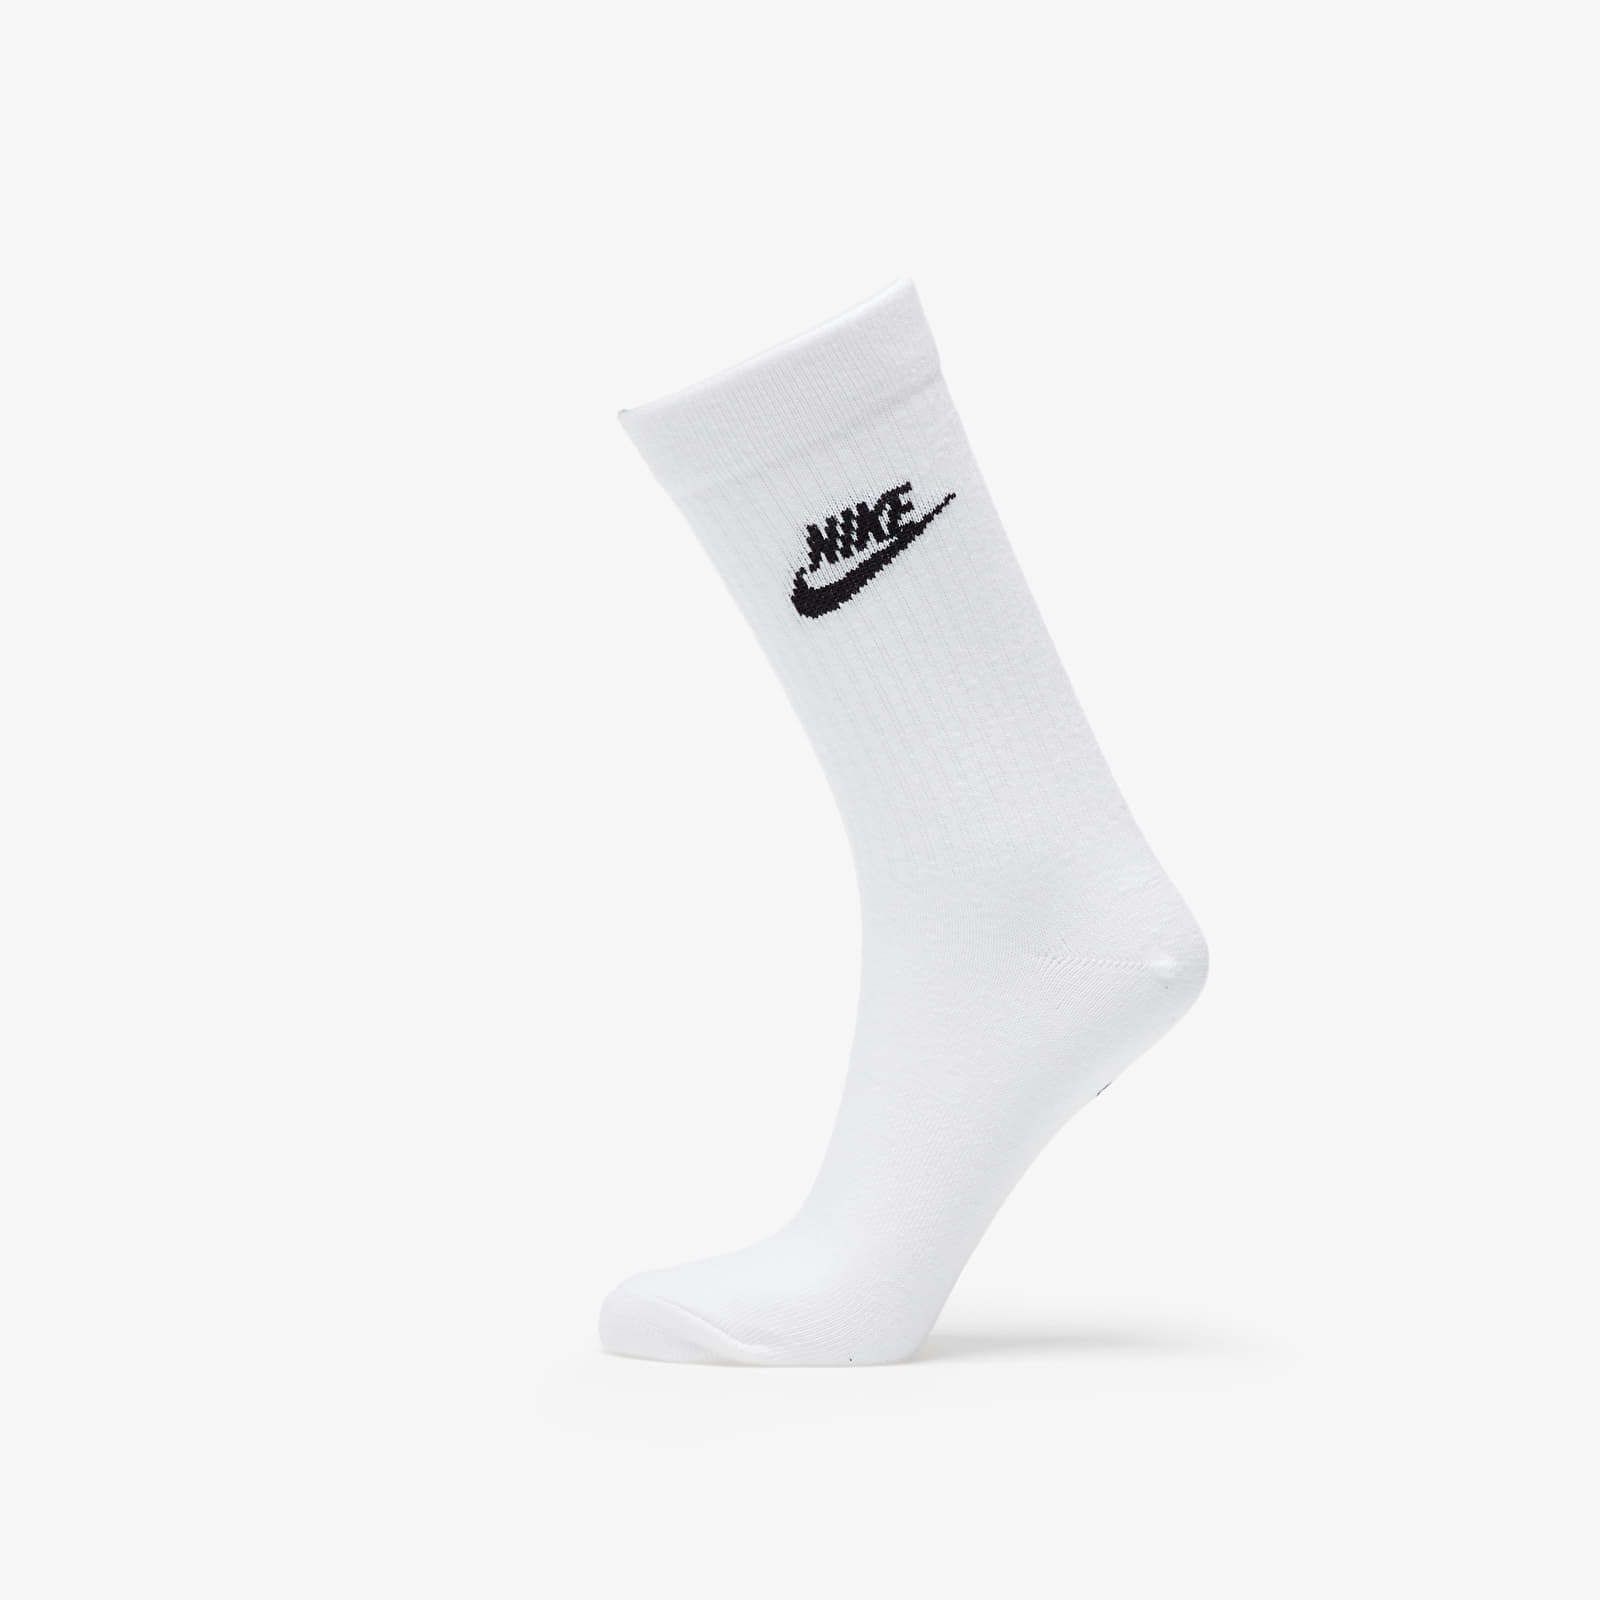 Ponožky Nike Sportswear Everyday Essential Crew Socks (3-pack) White/ Black